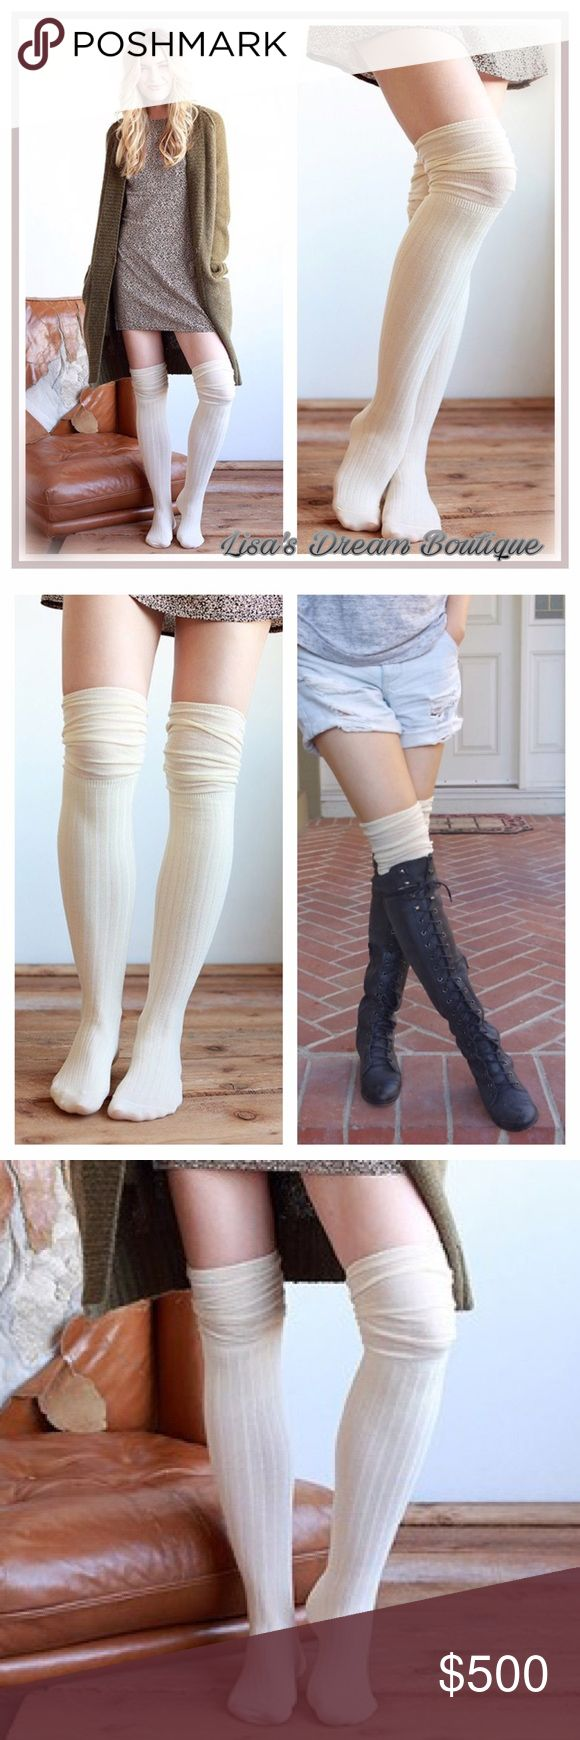 ✨COMING SOON✨•Cream• Over the Knee Socks✨ 🆕Rayon Blend Jersey Over the Knee Socks..loose topper over the knee to show over boots✨Like this listing to be notified of arrival✨🔹NO TRADES🔹PRICE WILL BE FIRM UNLESS BUNDLED🔹💟20% OFF BUNDLES💟 LDB Accessories Hosiery & Socks